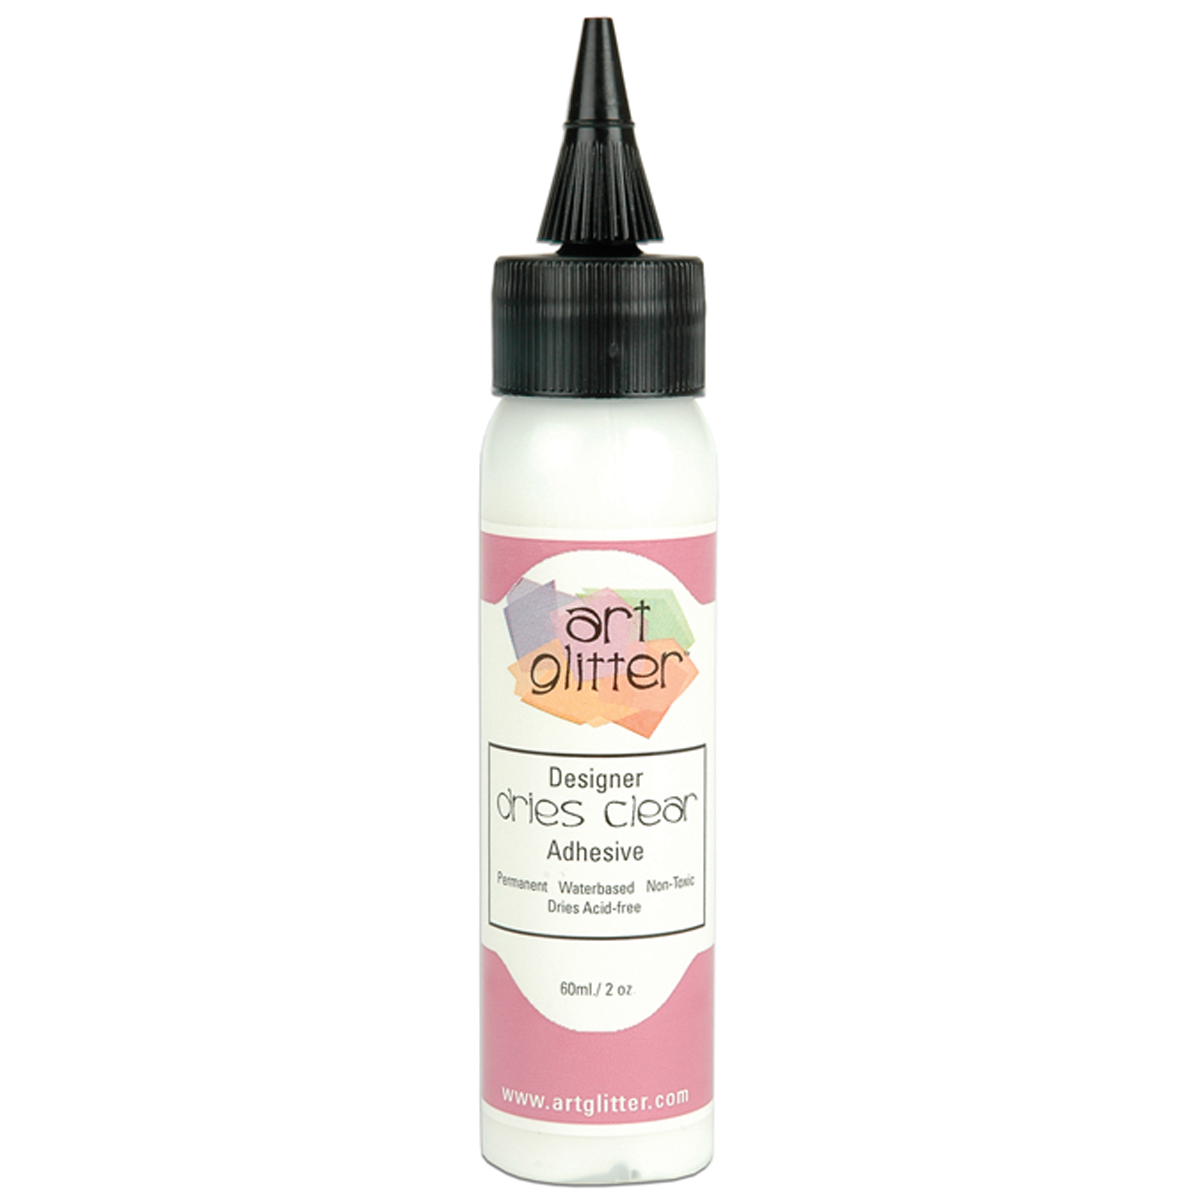 Art Institute Glitter Designer Dries CLEAR Adhesive 2oz-